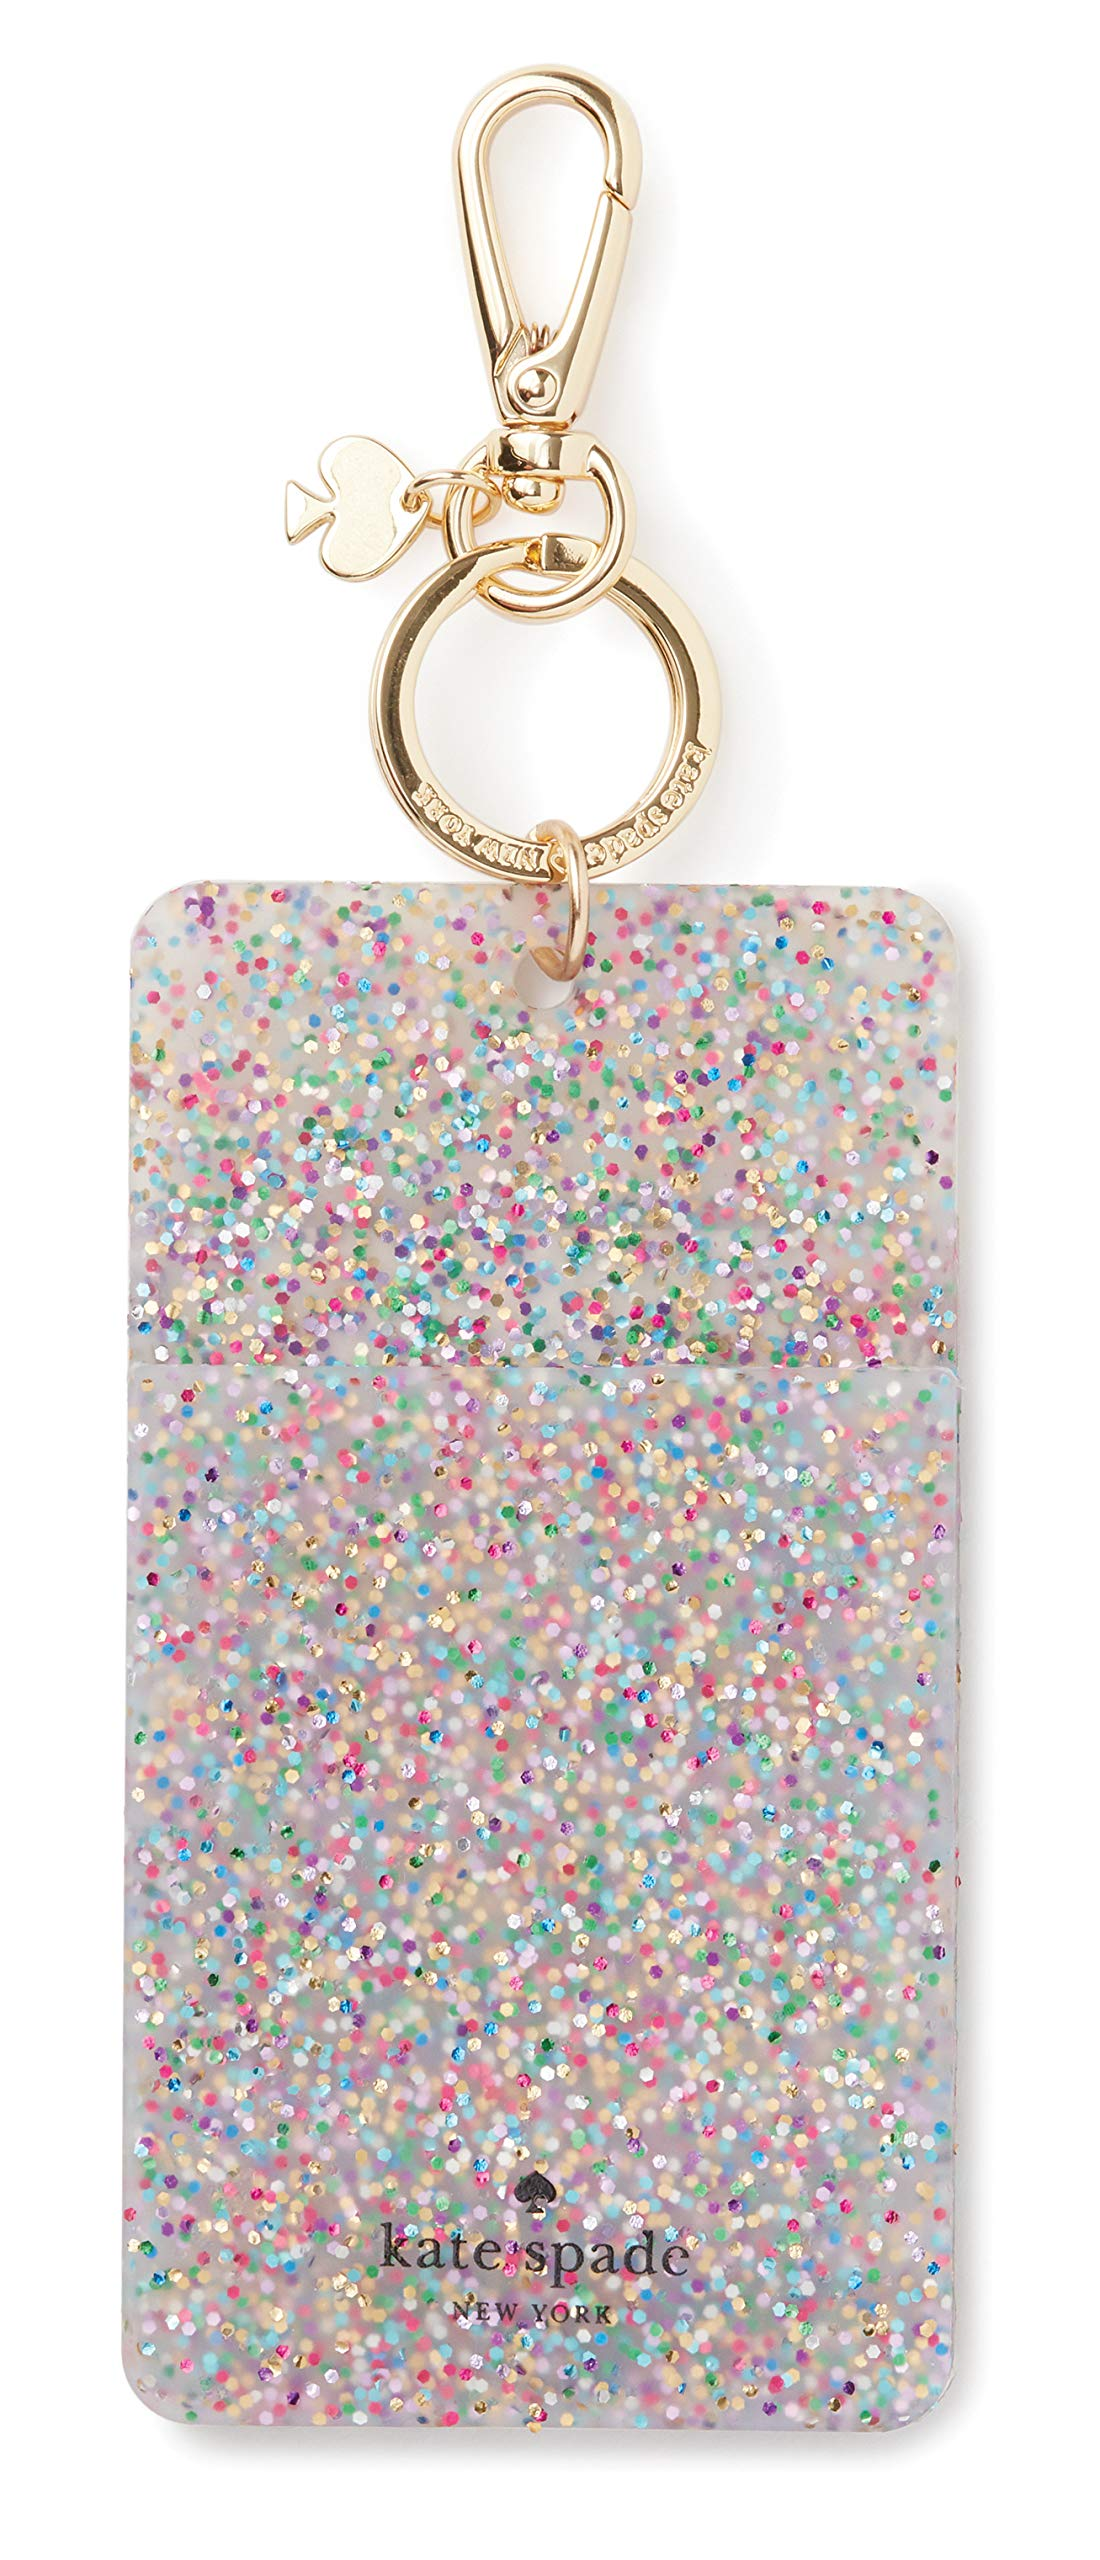 Kate Spade New York Id Badge Clip Key Chain, Multi Glitter by Kate Spade New York